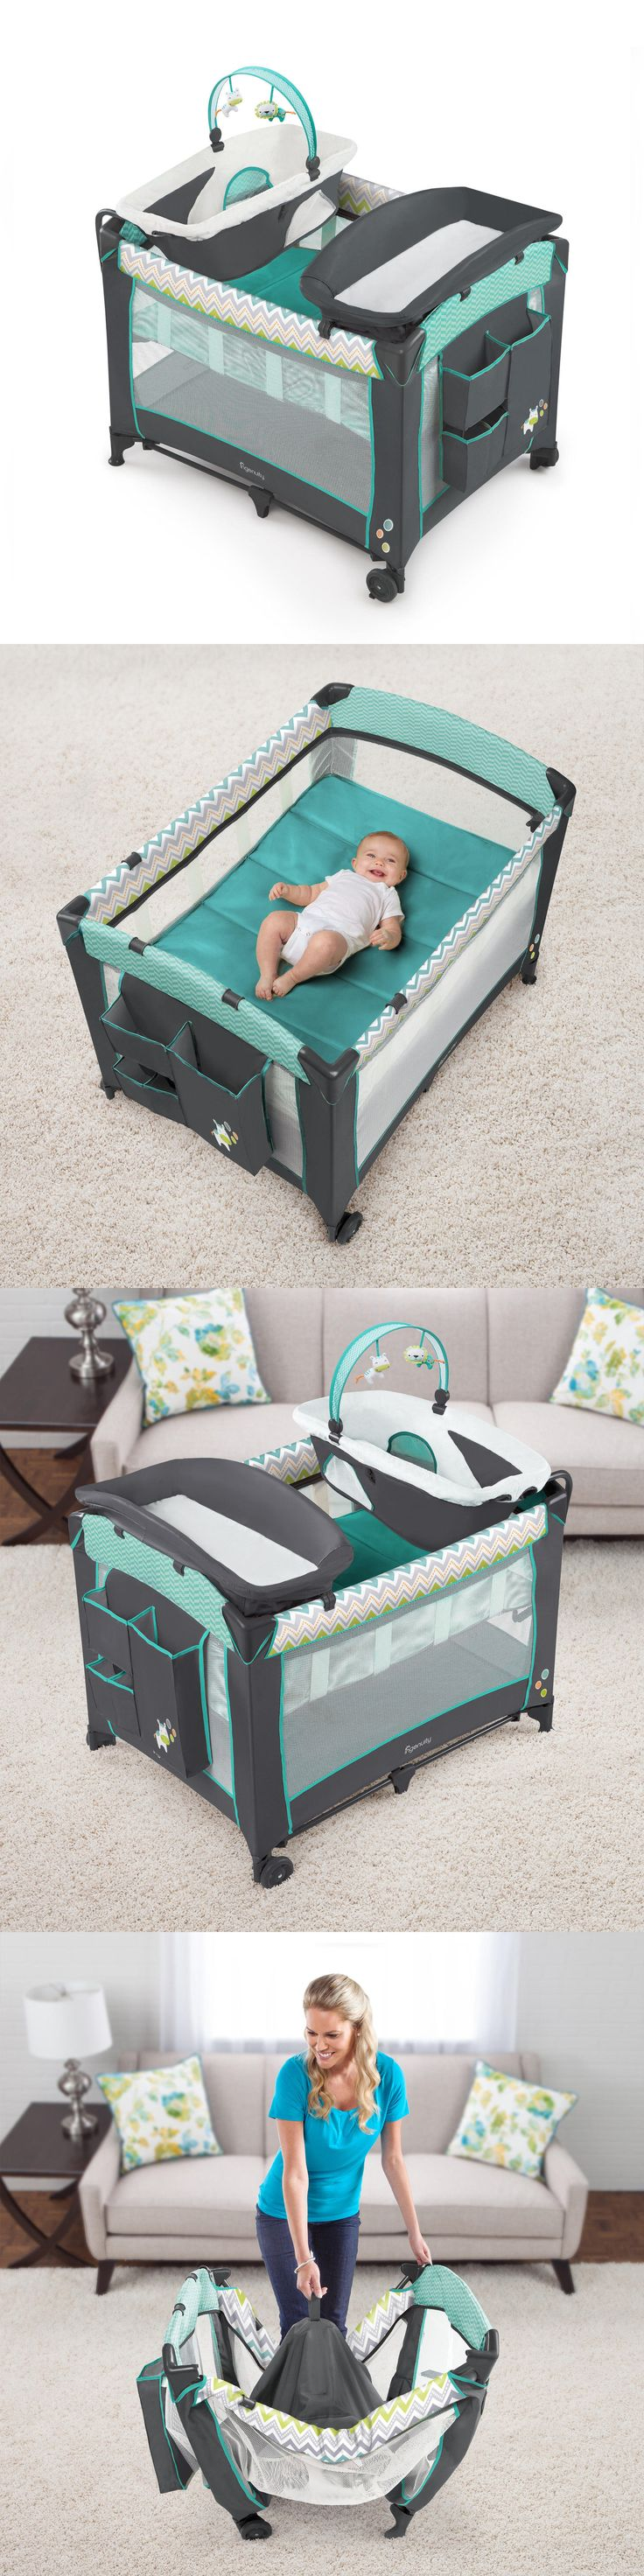 Baby Furniture Kitchener 17 Best Ideas About Baby Bassinet On Pinterest Bed For Baby